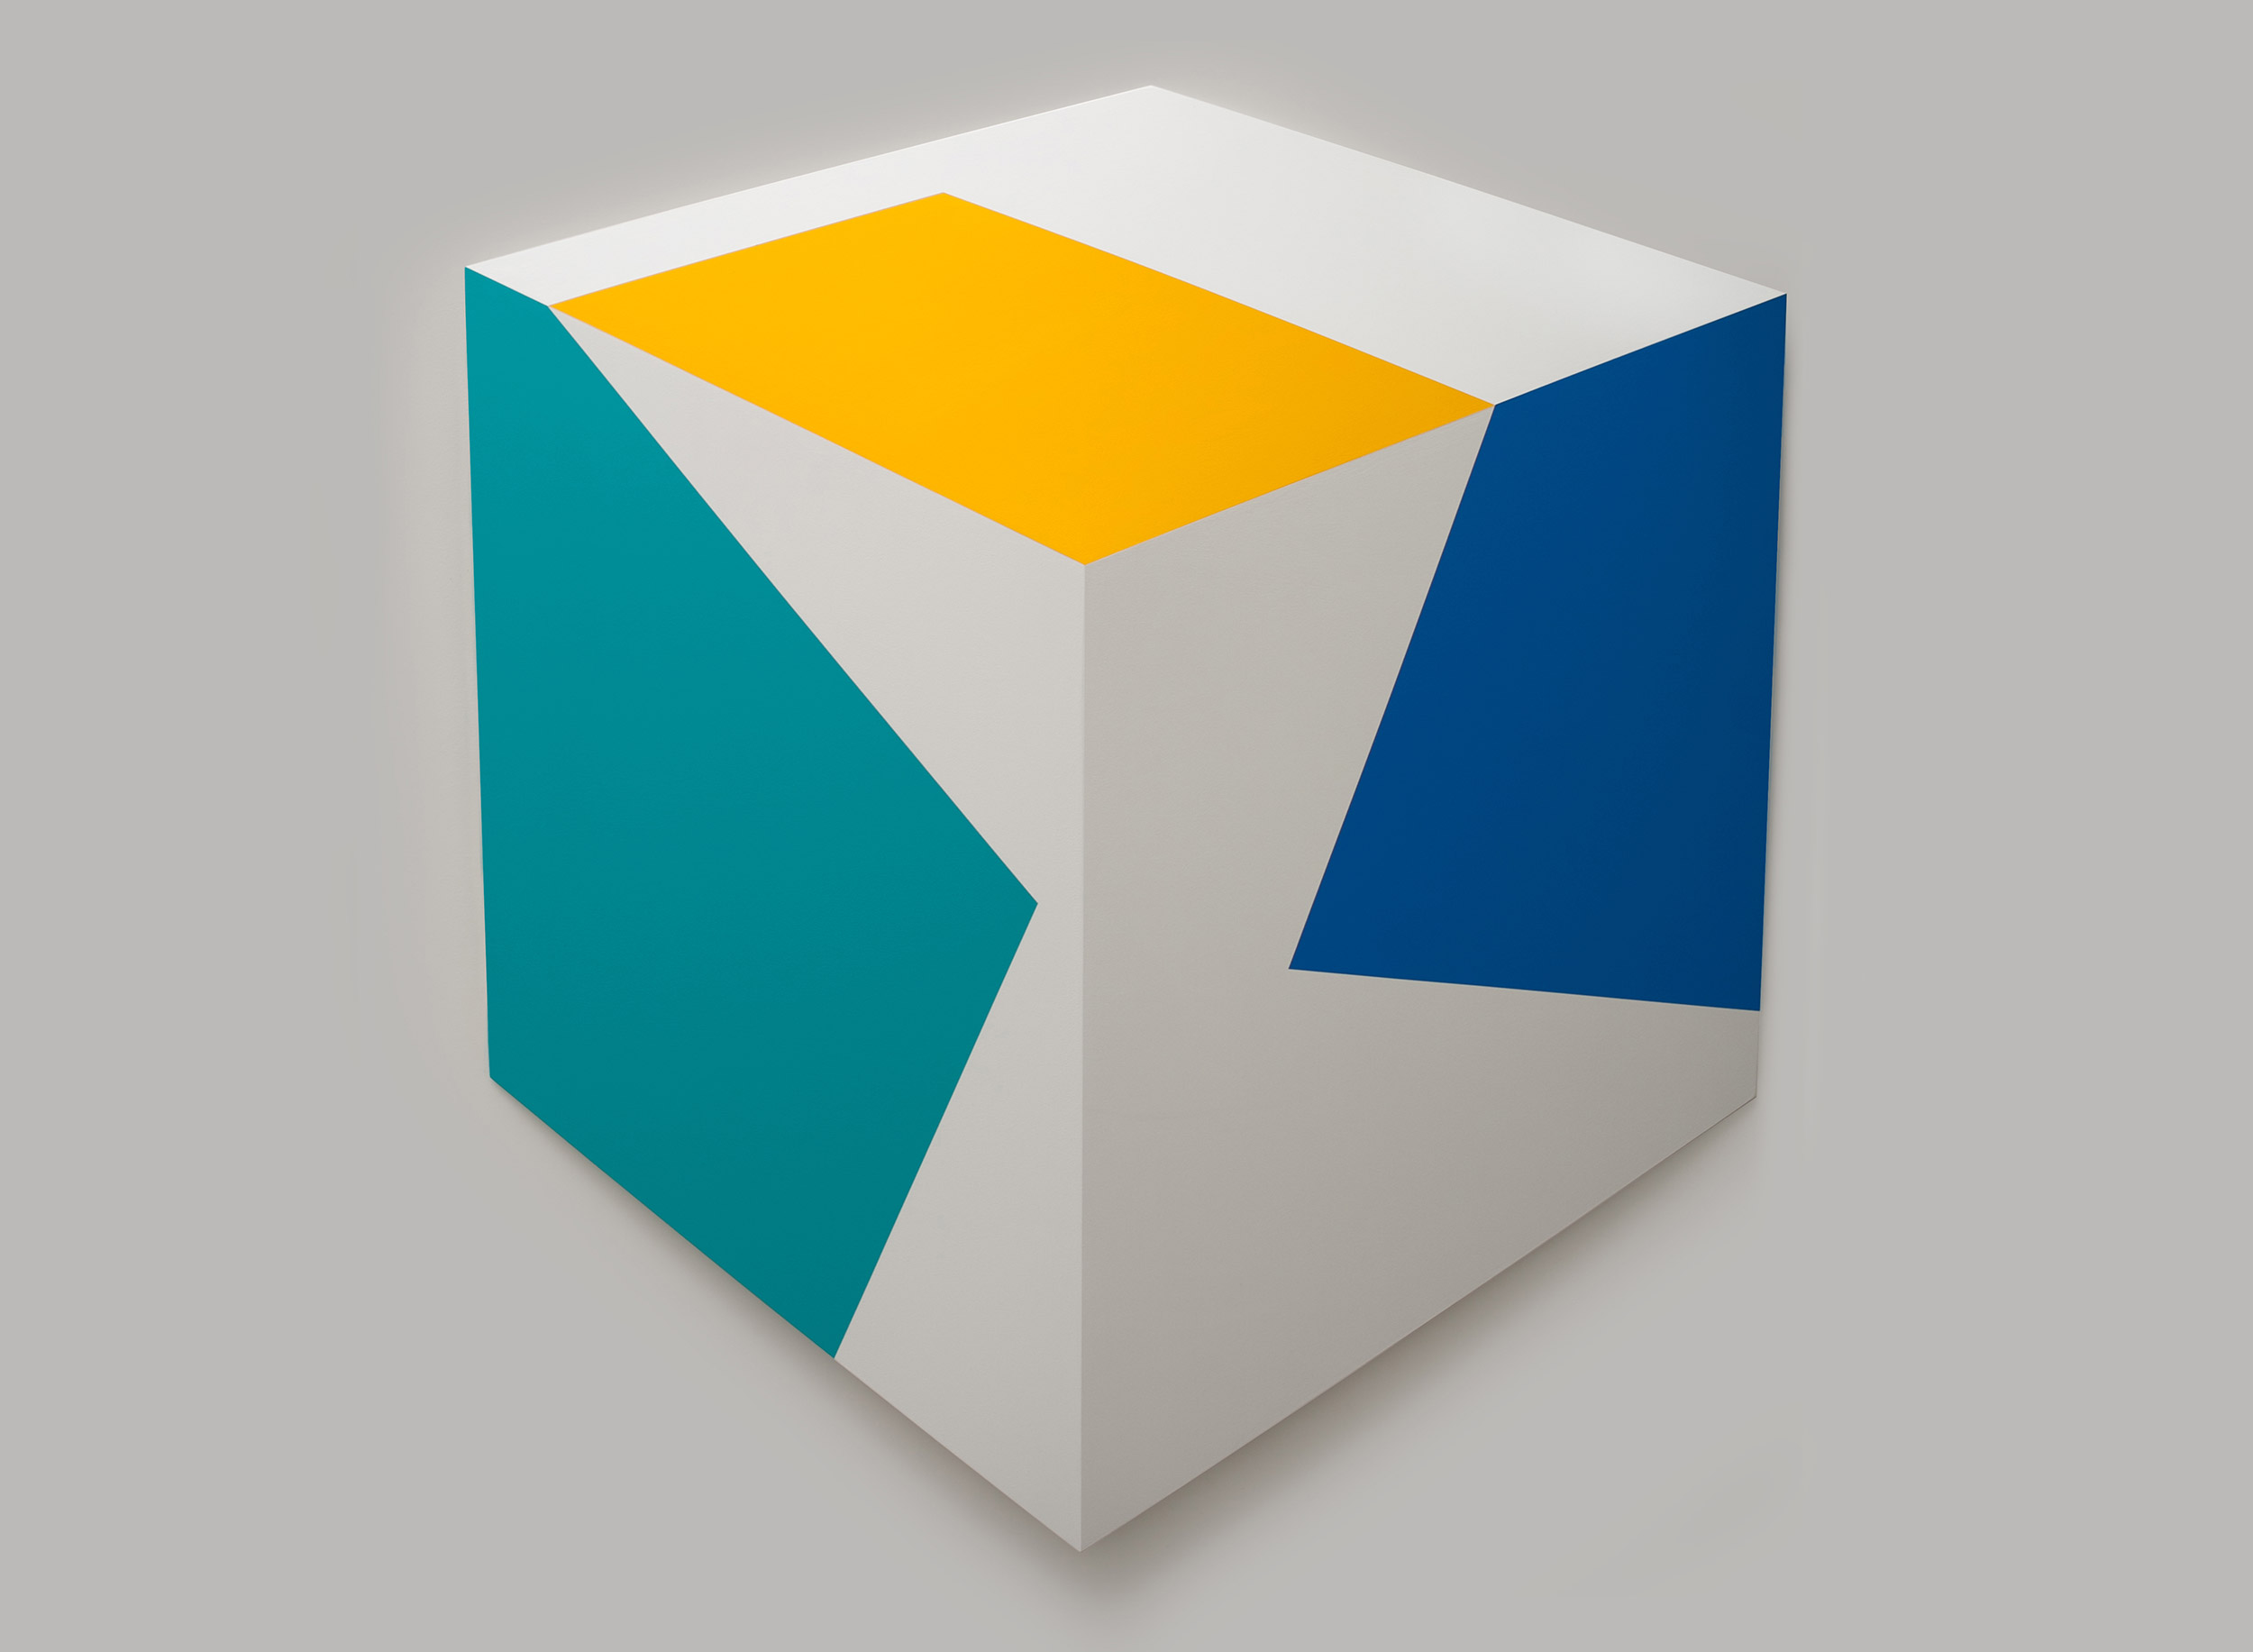 Suspended-Teal-Yellow-Blue.jpg